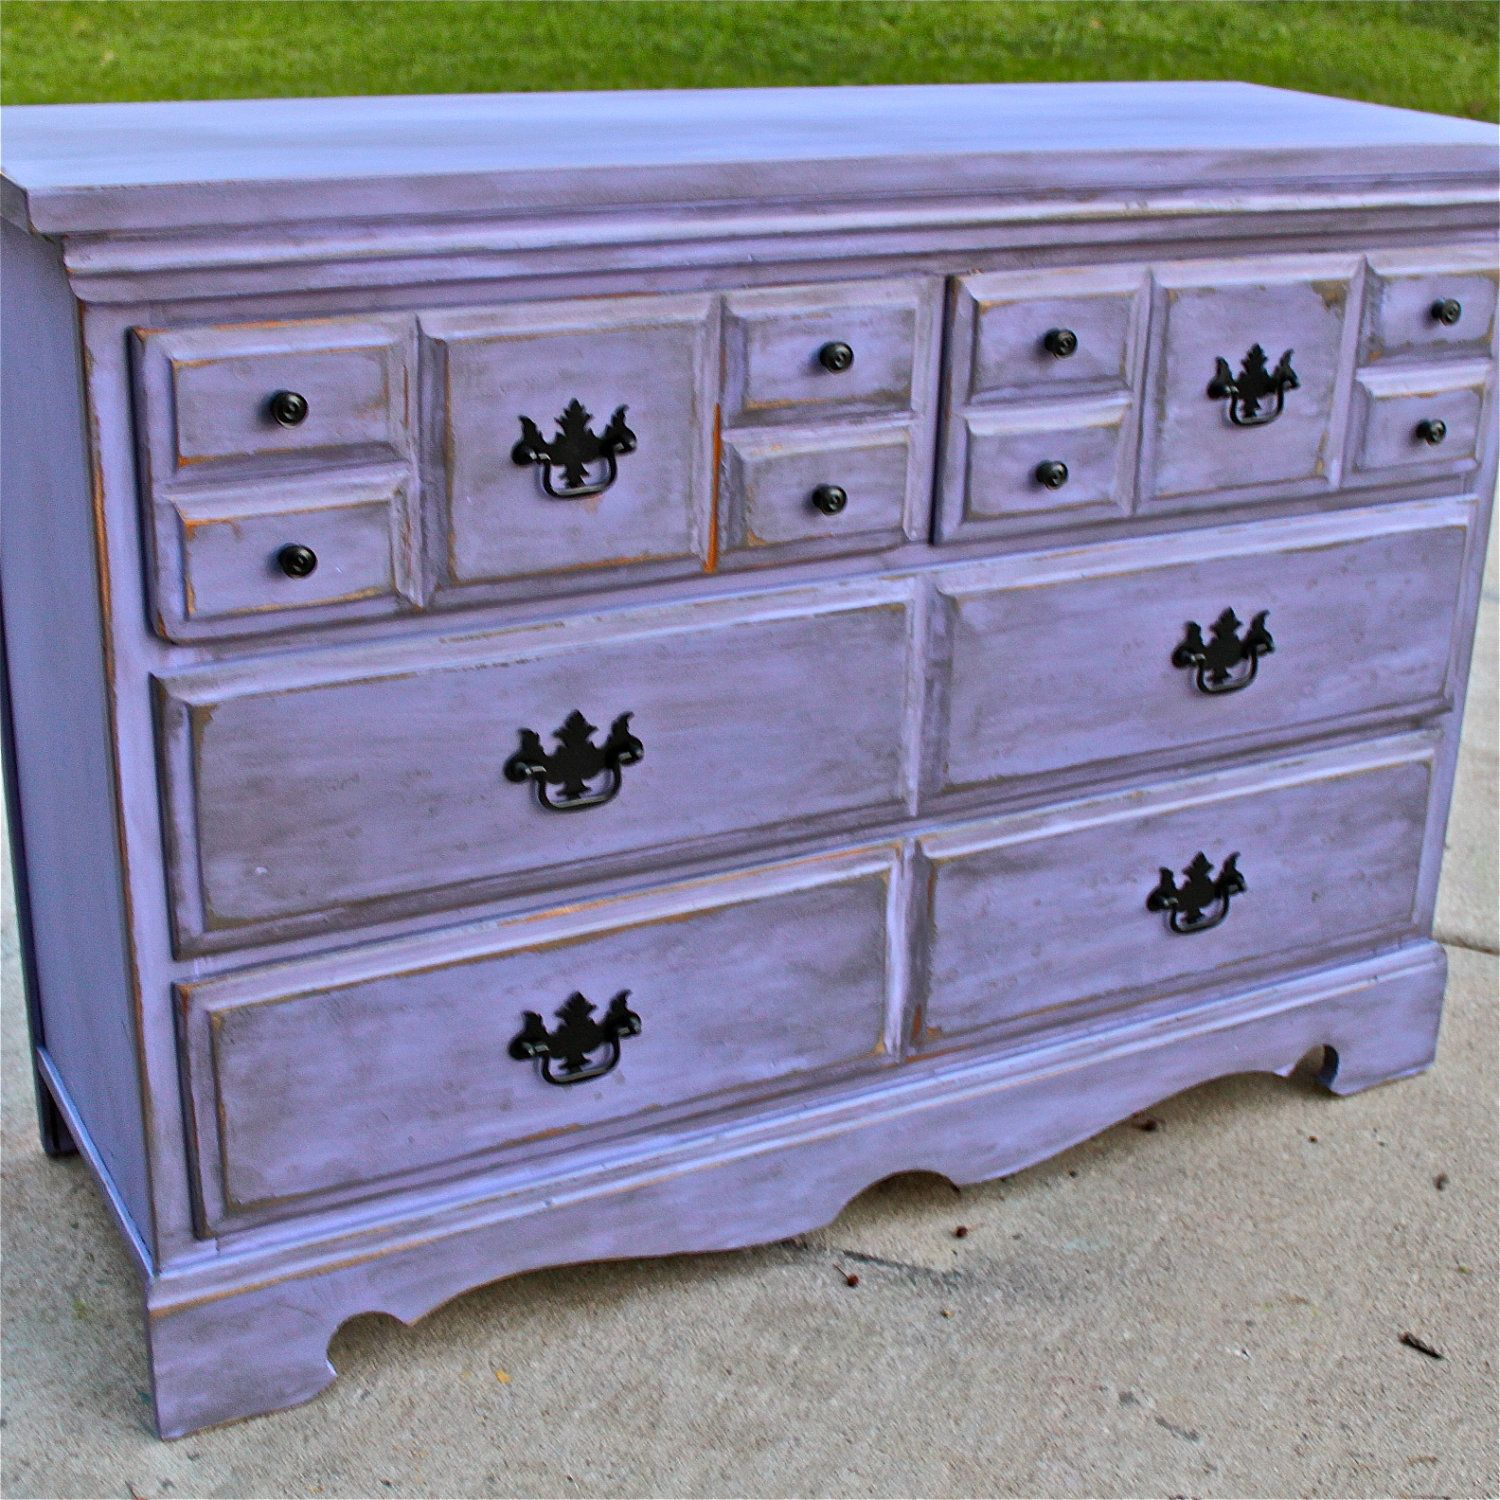 Distressed Bedroom Sets Bedroom Cupboards With Mirror Sliding Doors Bedroom Colour As Per Vastu Shabby Chic Bedroom Sets: Lilac Purple Vintage Dresser/ Buffet/ Bedroom Furniture